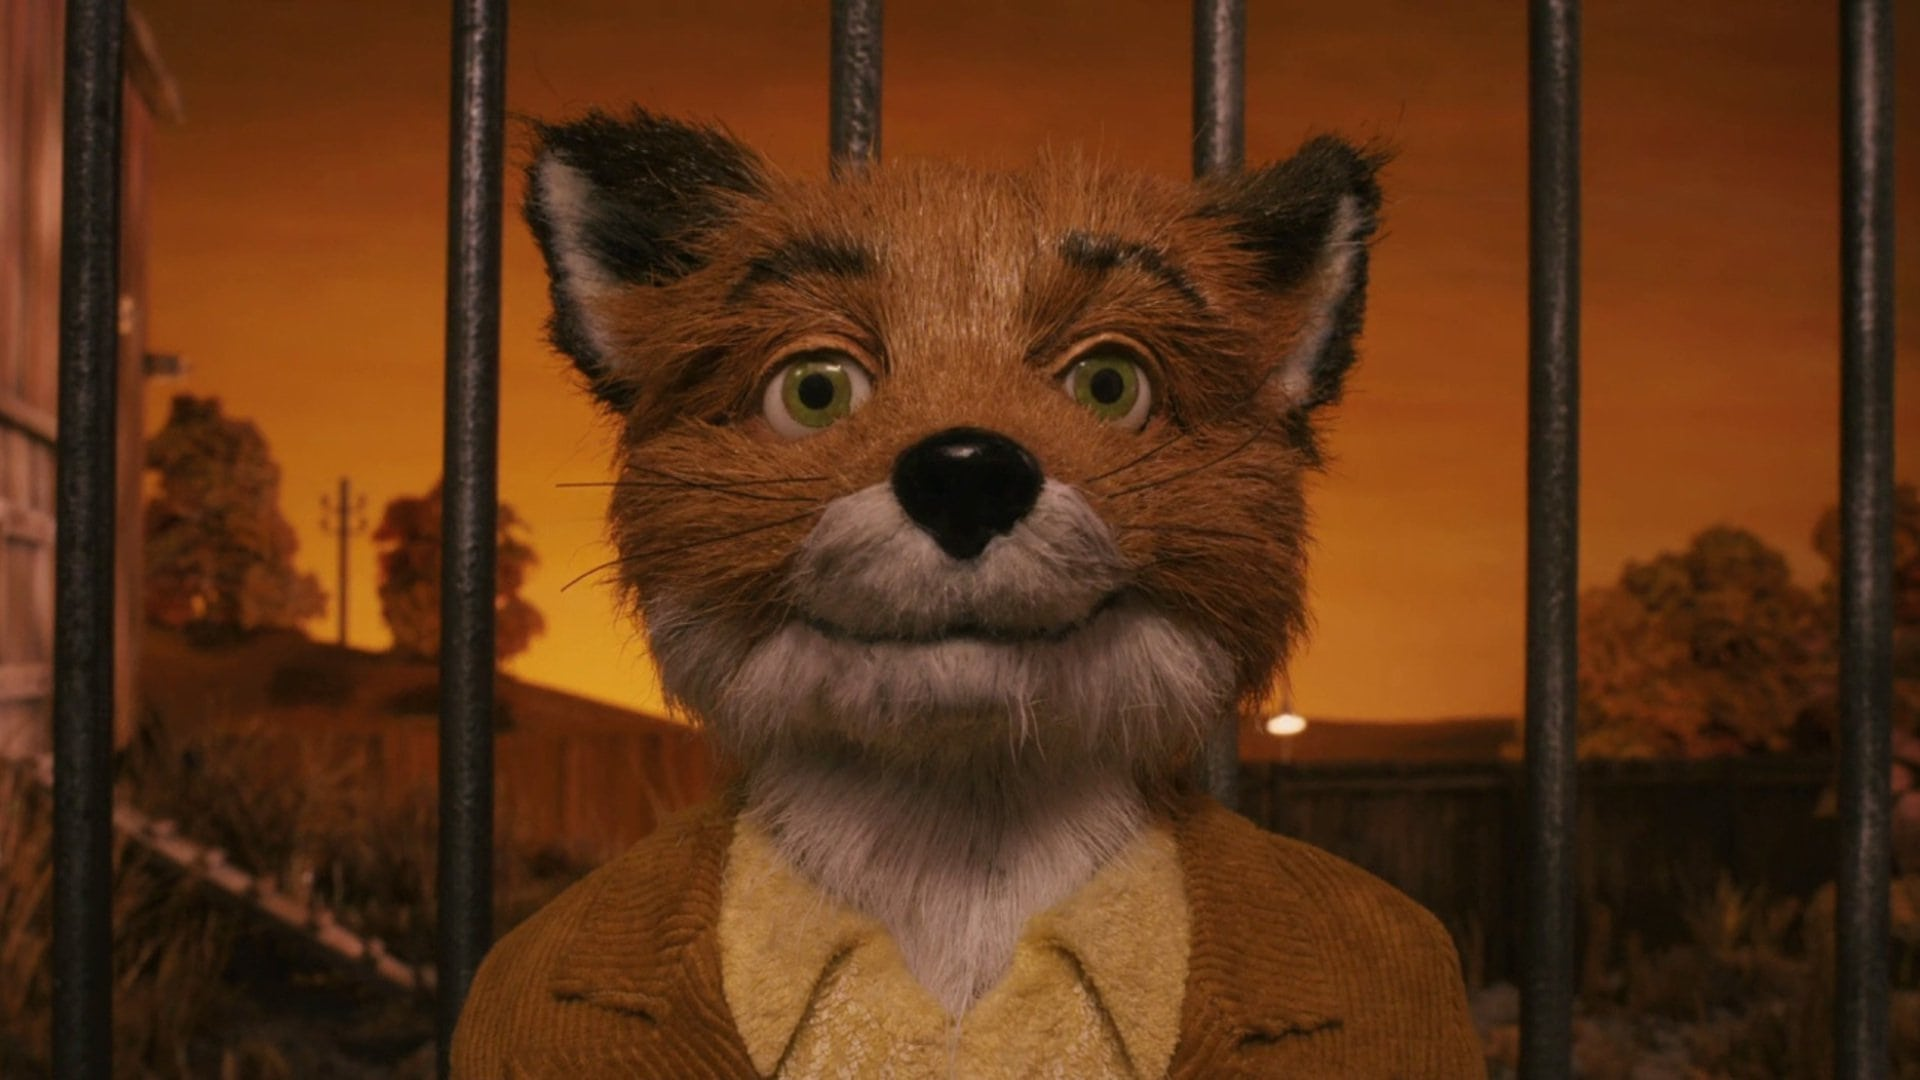 fantastic mr fox full movie watch fantastic mr fox cartoon online on kisscartoon. Black Bedroom Furniture Sets. Home Design Ideas